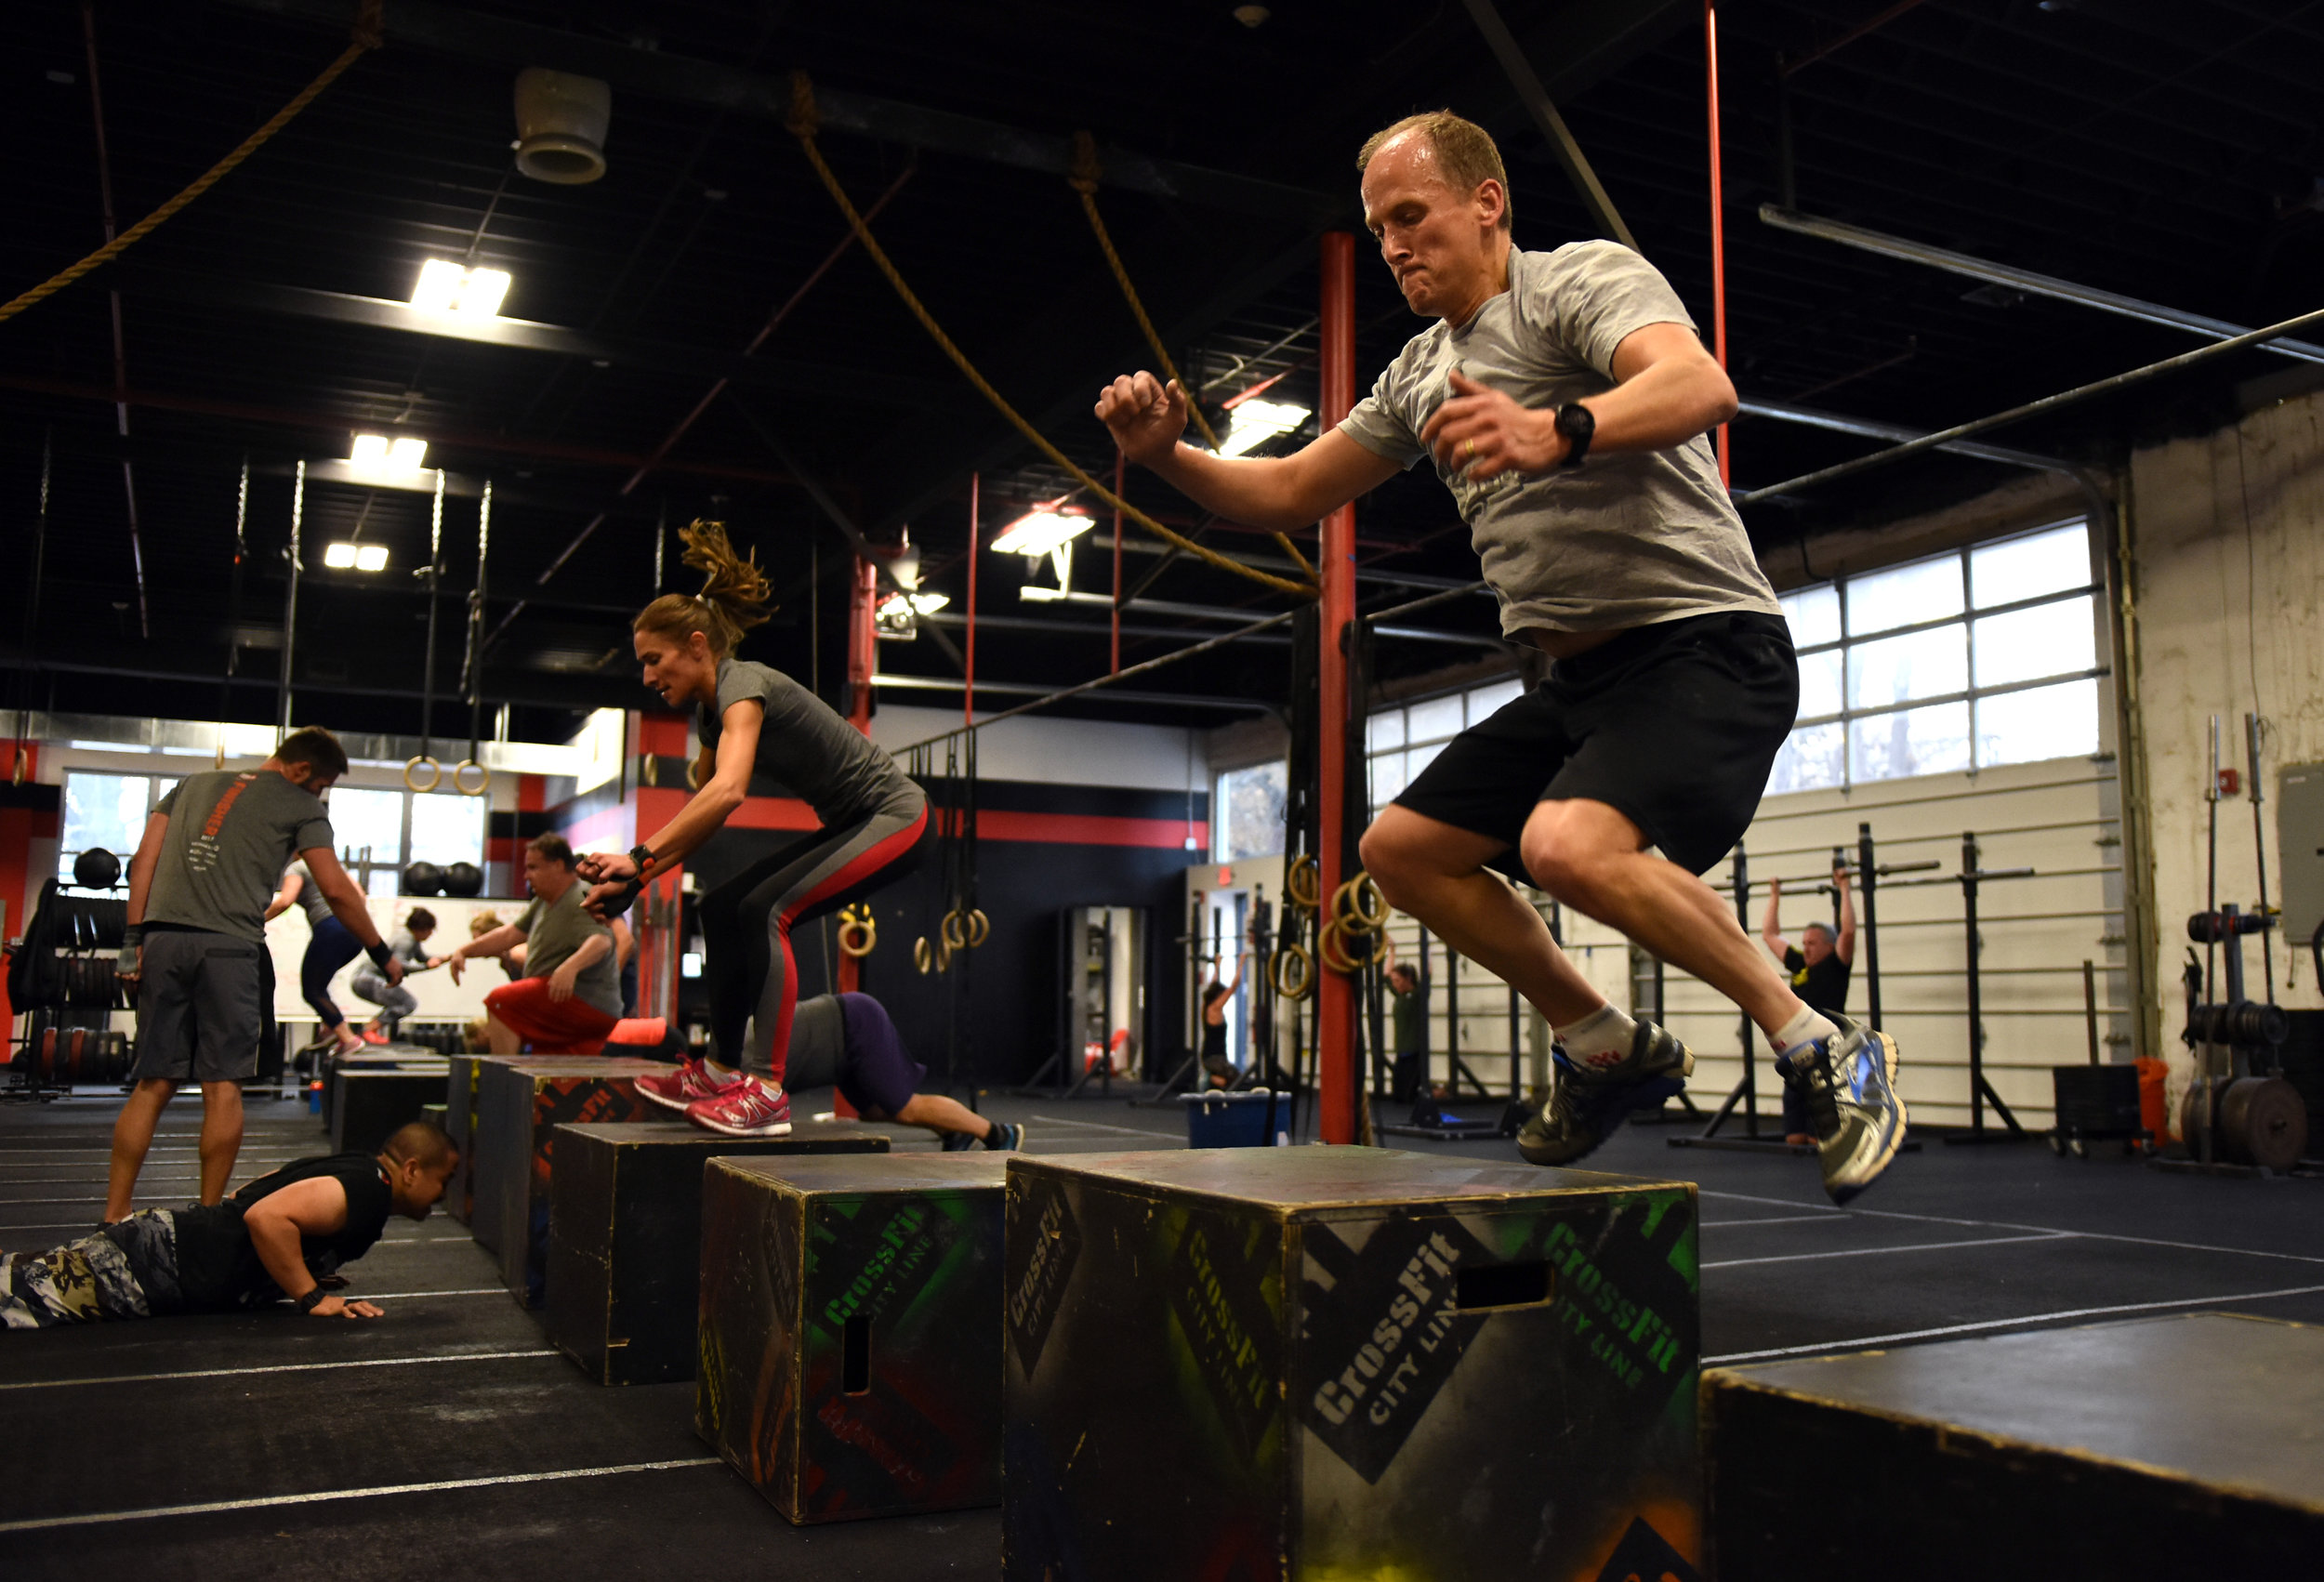 I'm an Experienced CrossFitter -